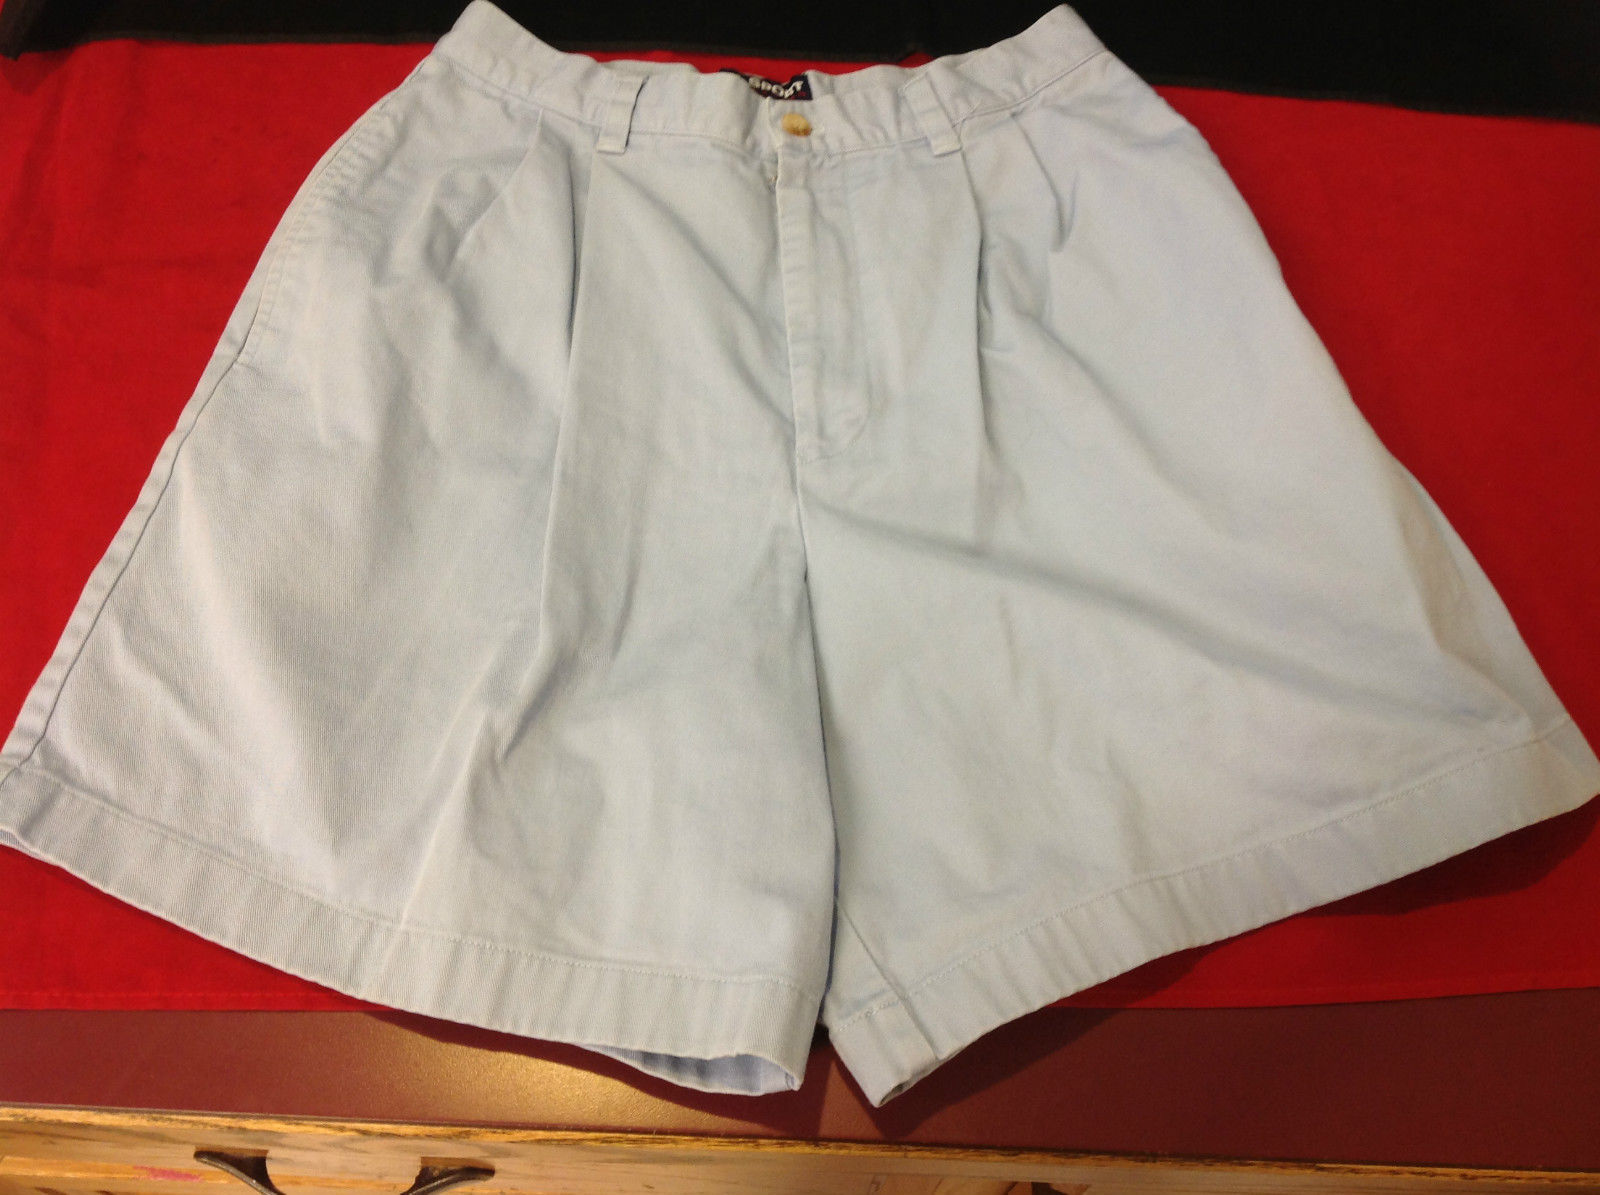 Ladies Polo Sport Ralph Lauren Shorts Light Blue Very Good Condition Size 6